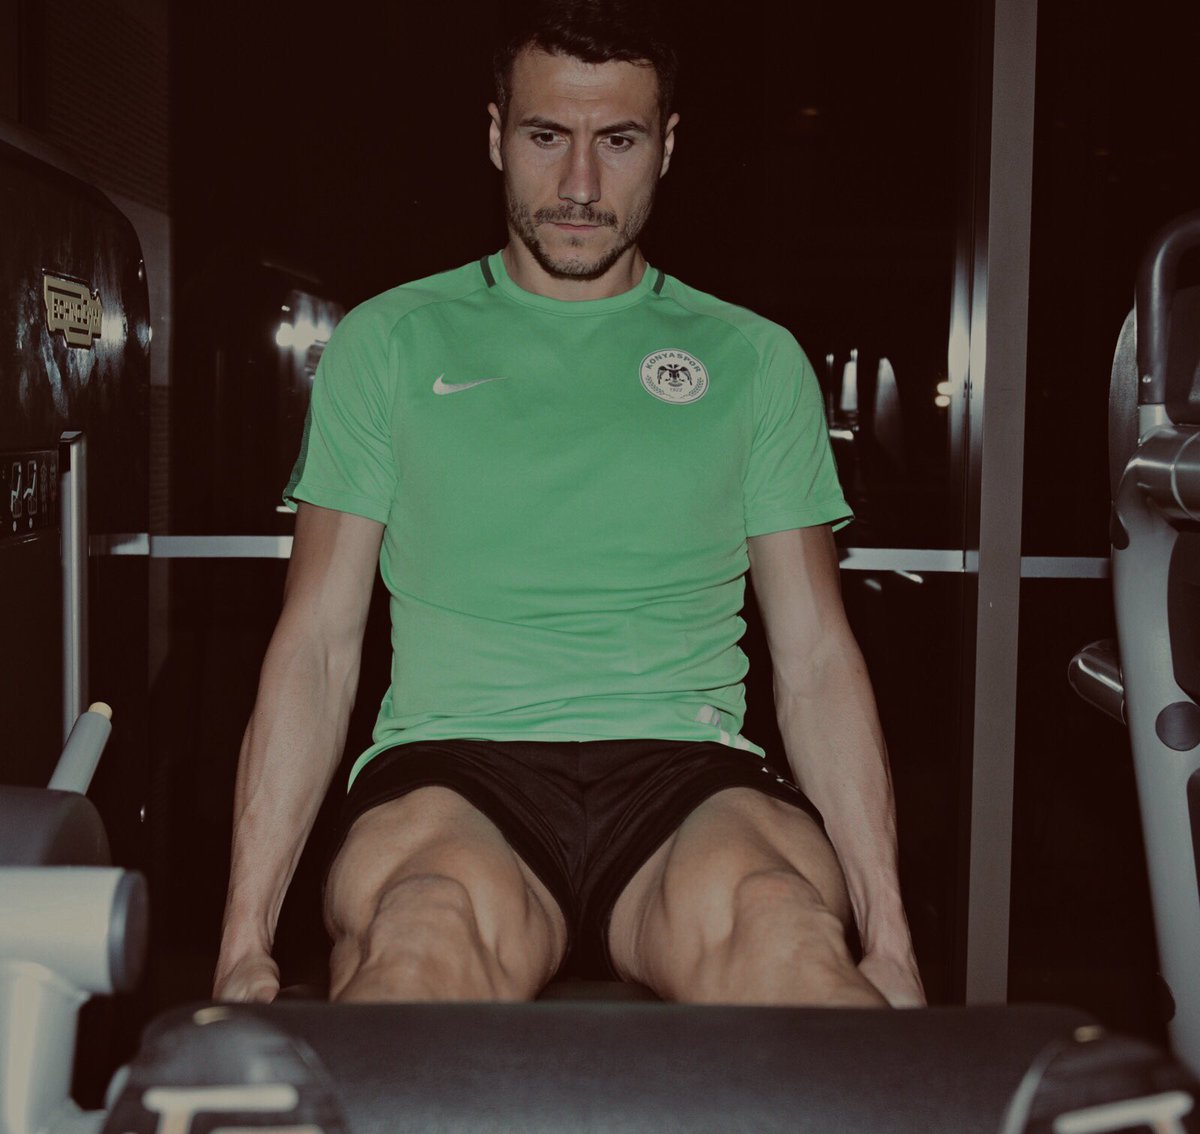 When Aykut come your body and legs its like machine #Boom #Boom #Dusmani #NoAdisNoParty<br>http://pic.twitter.com/DN4AdPmX0m